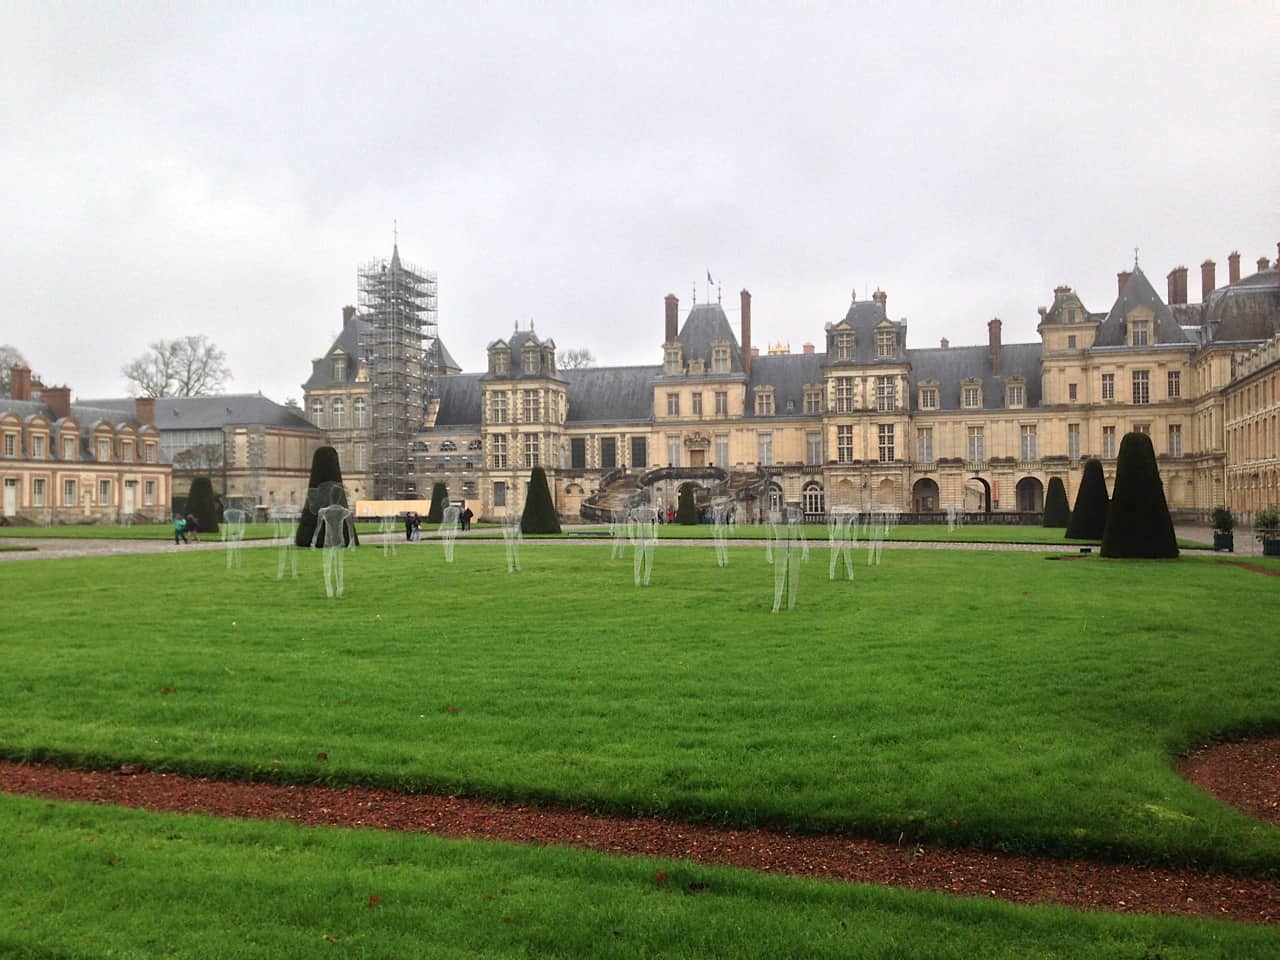 Art installation at Fontainebleau chateau